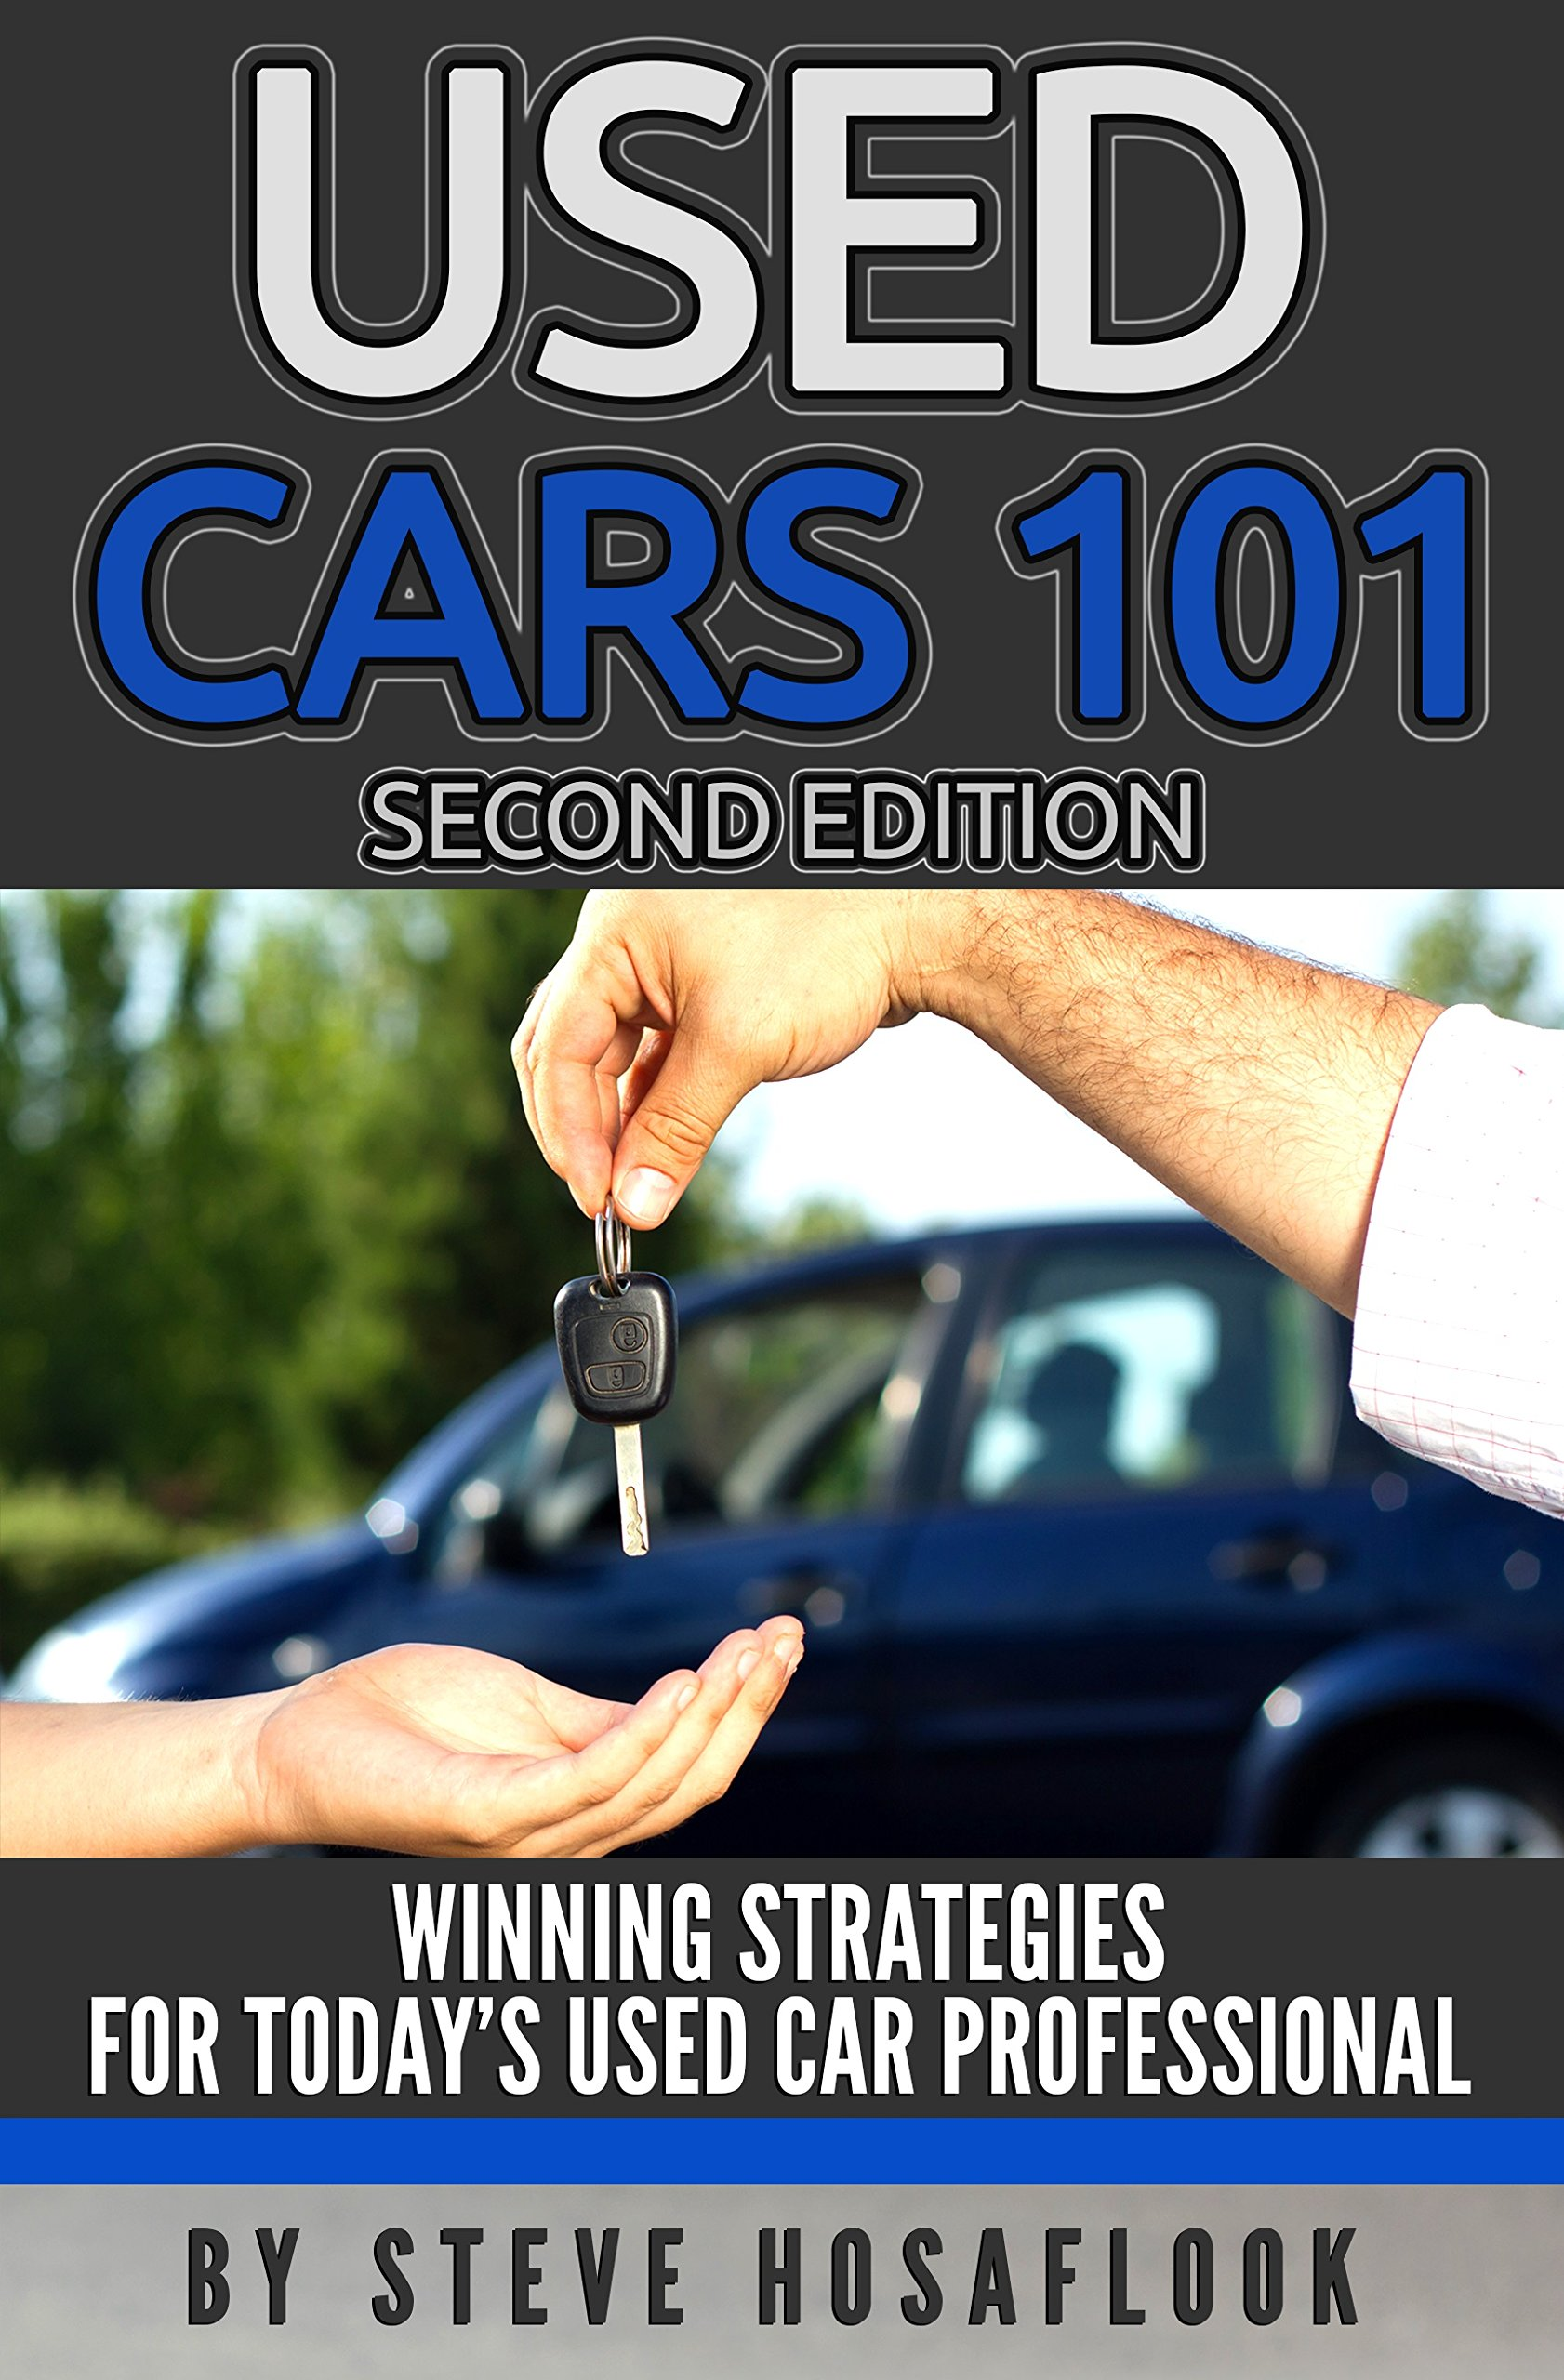 Used Cars 101 Second Edition: Winning Strategies For Today's used Car Professional